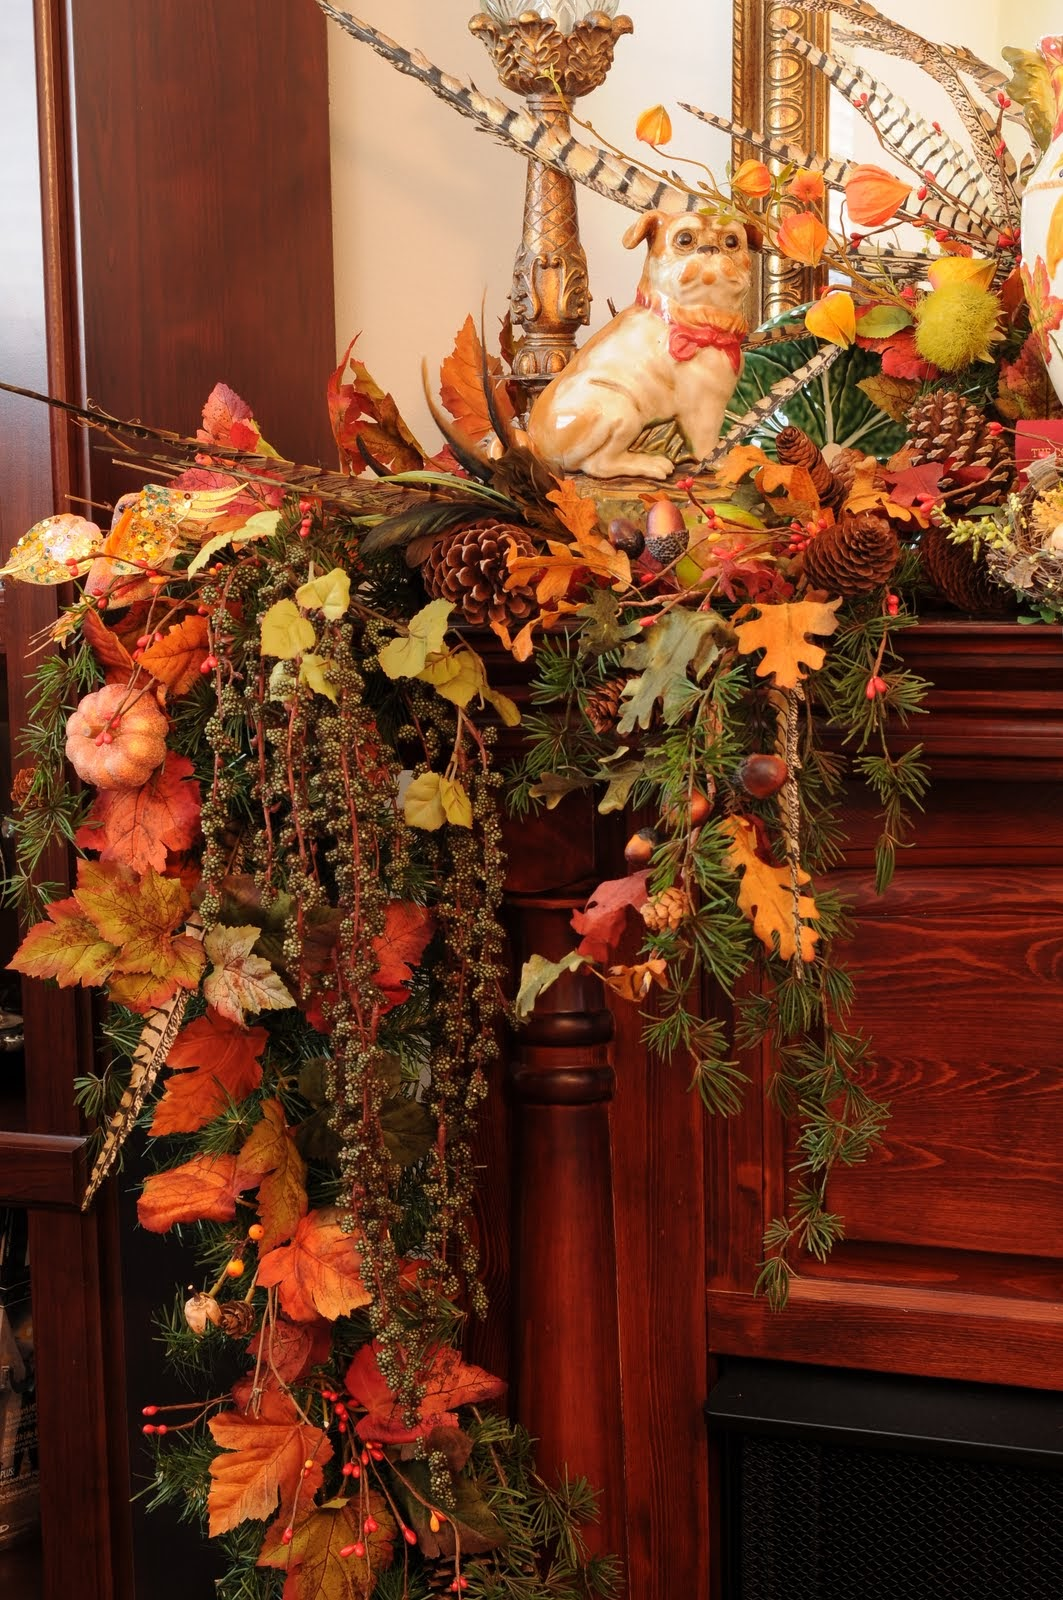 decor fall thanksgiving decorating decorations autumn mantel fireplace decoration decorate table mantle mantels decorated designs floral flowers decore interior fresh